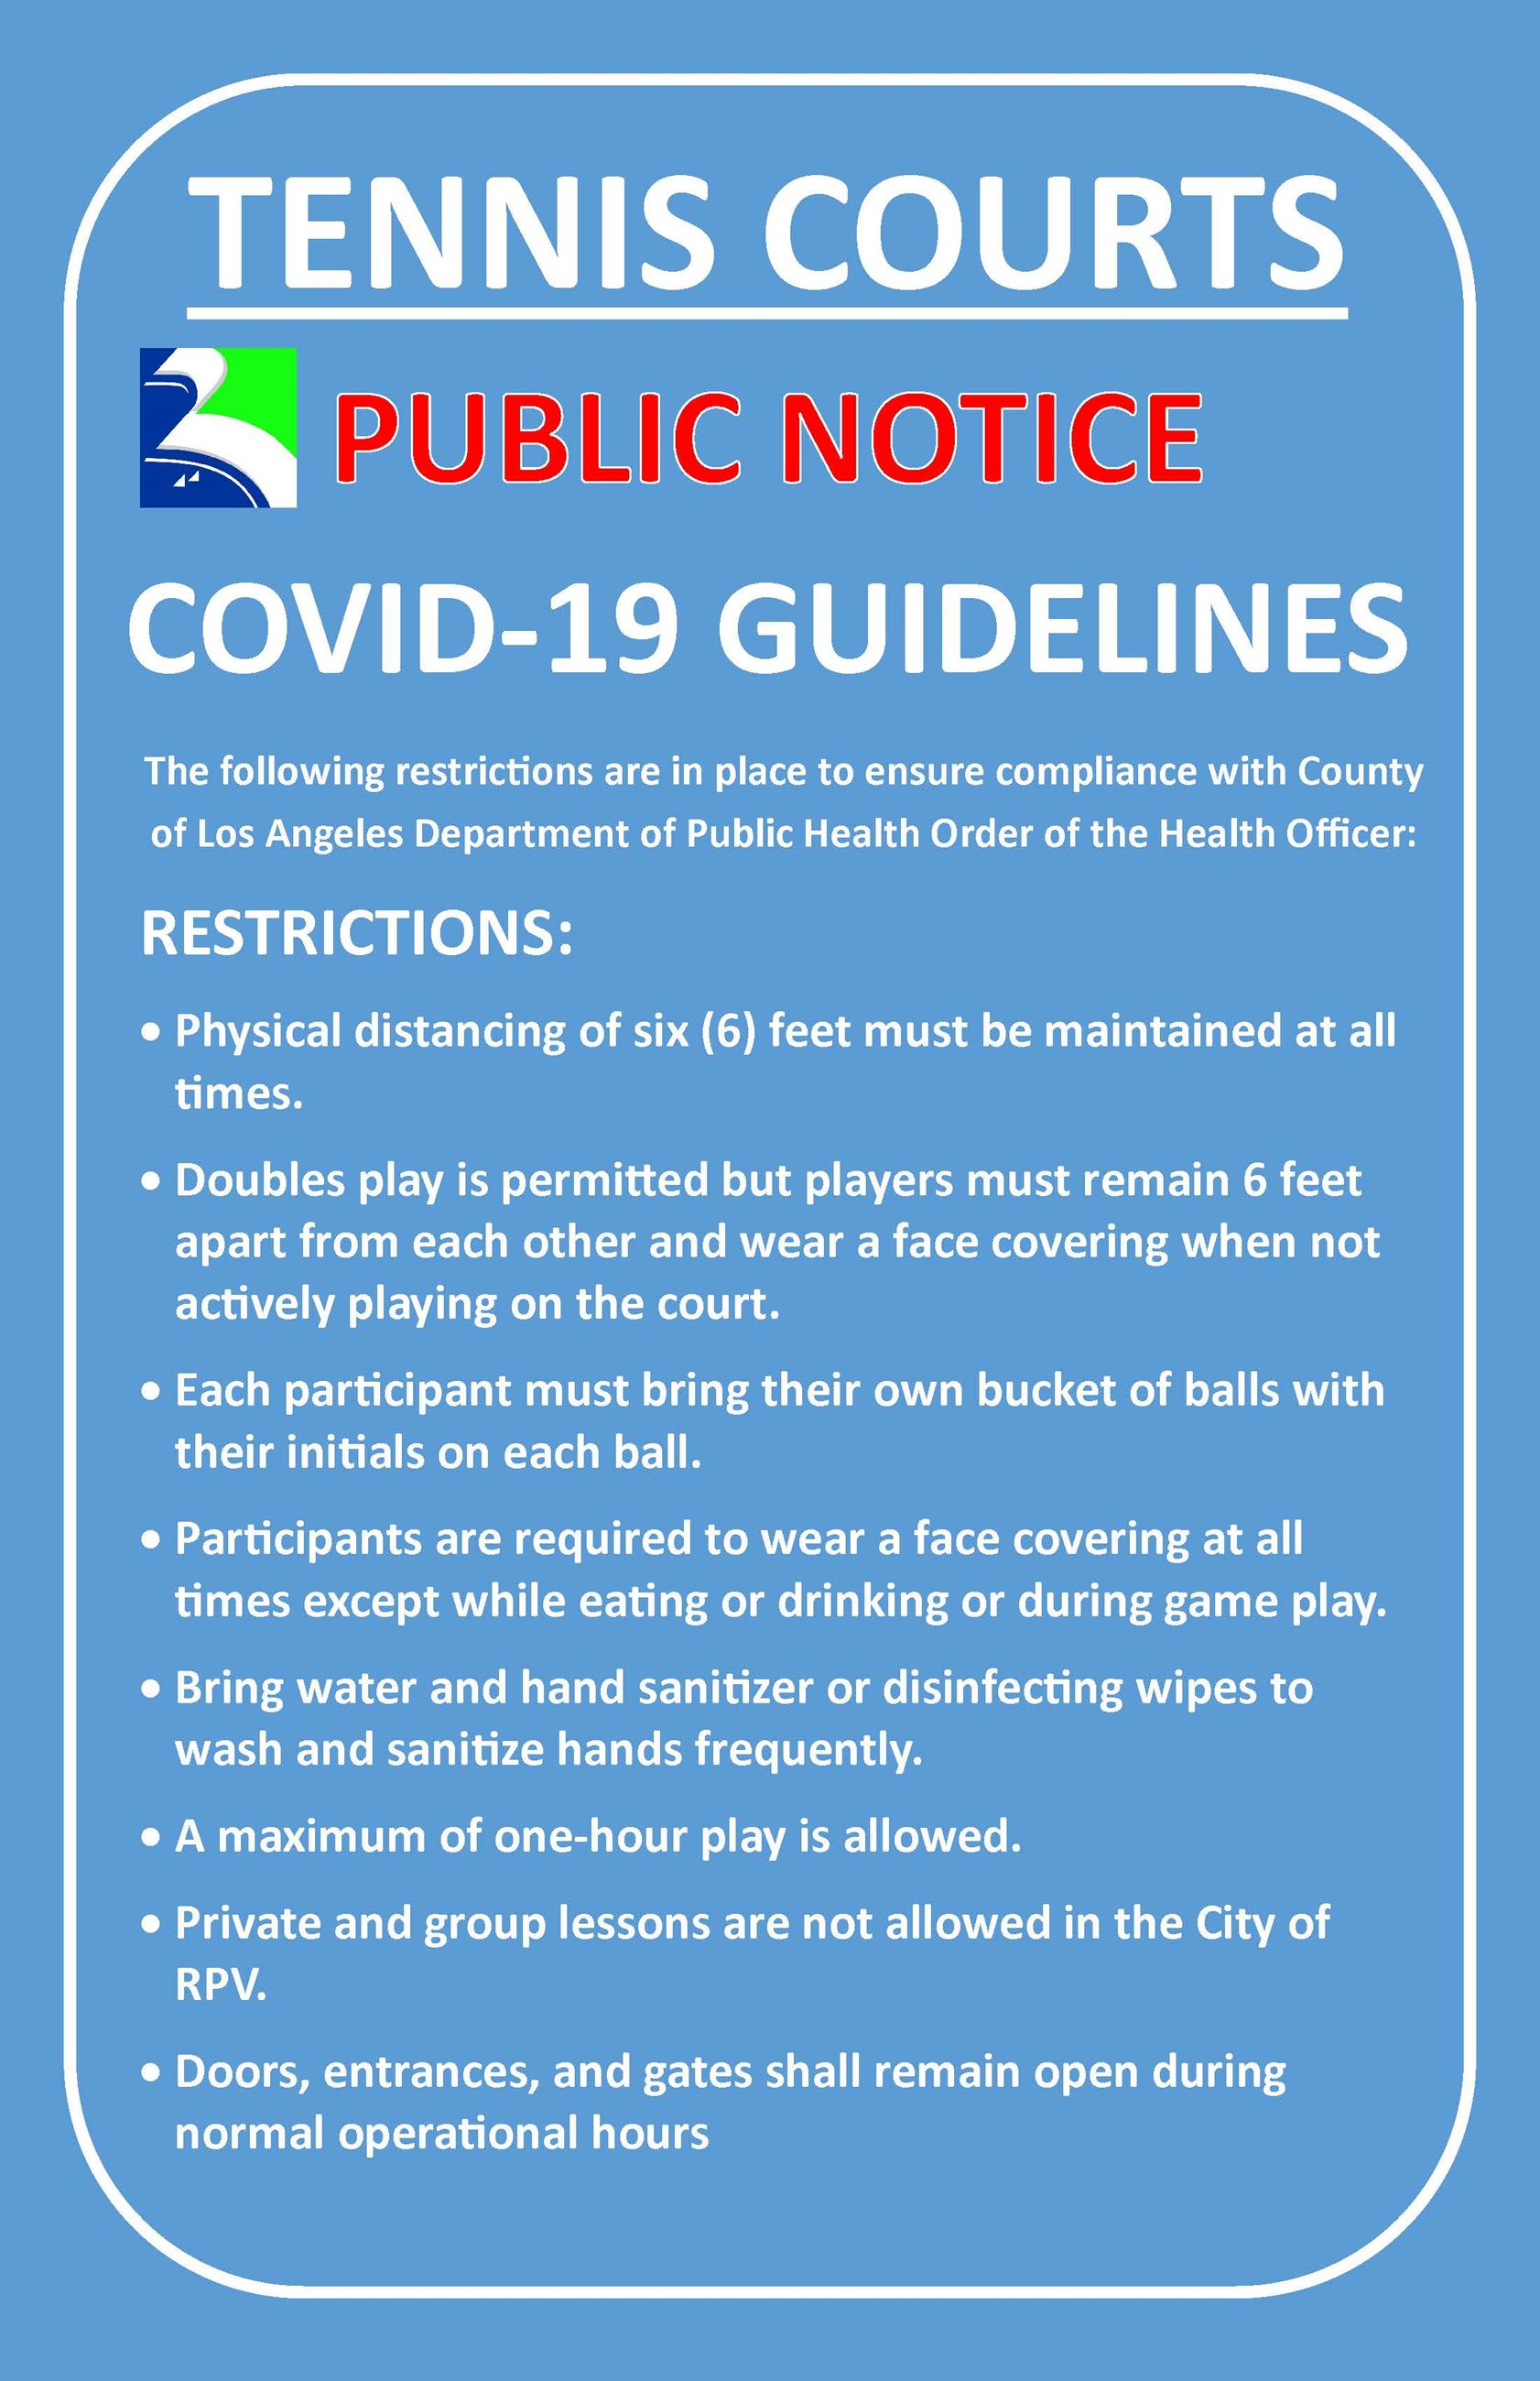 Tennis Sign New Covid Restrictions 2.5.2021